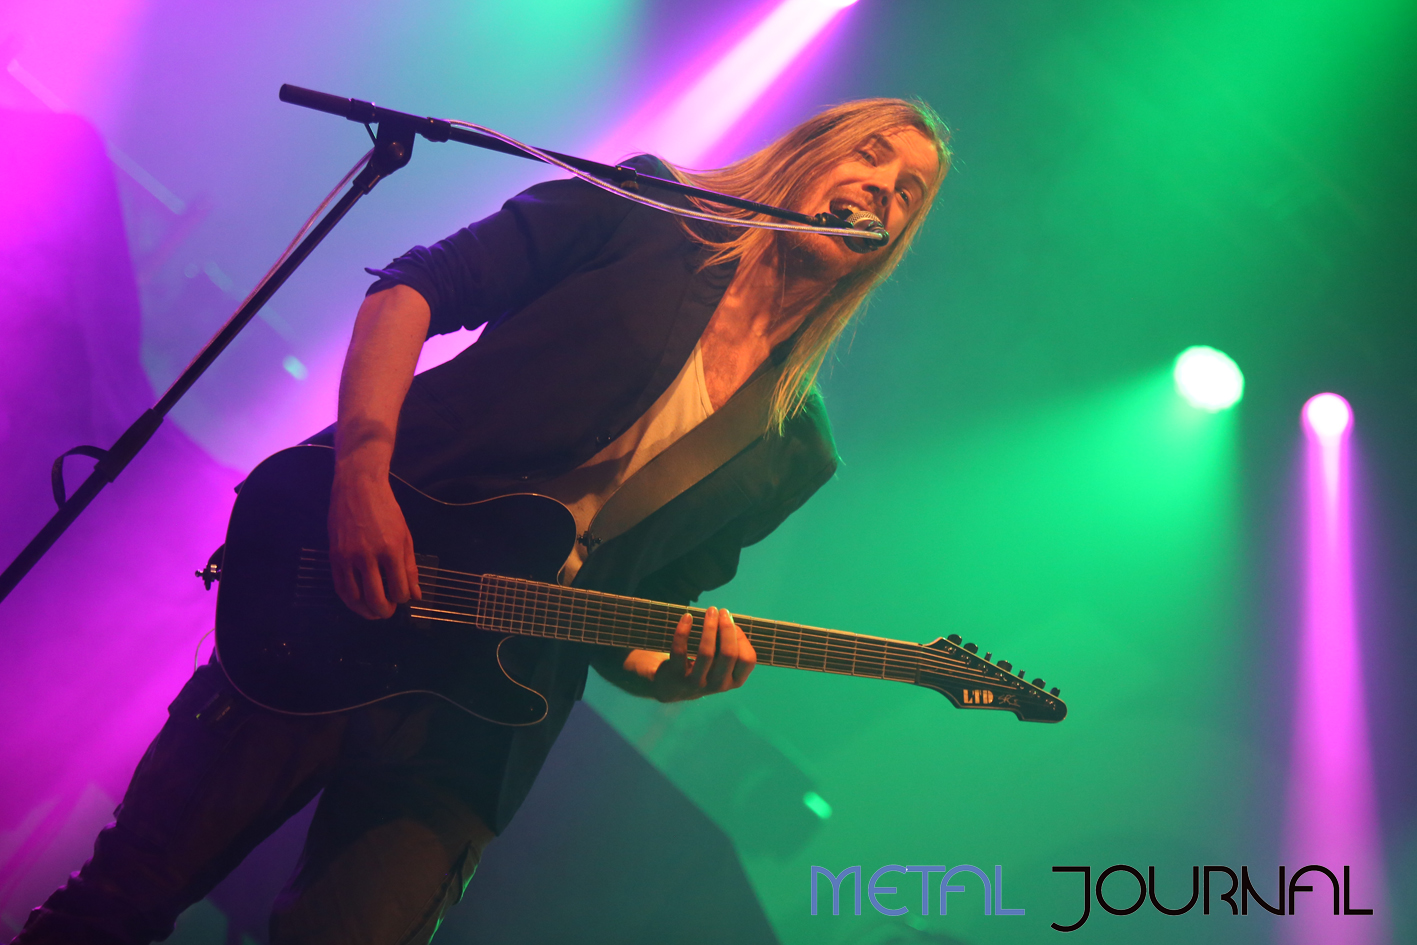 vola - metal journal 2019 pic 7